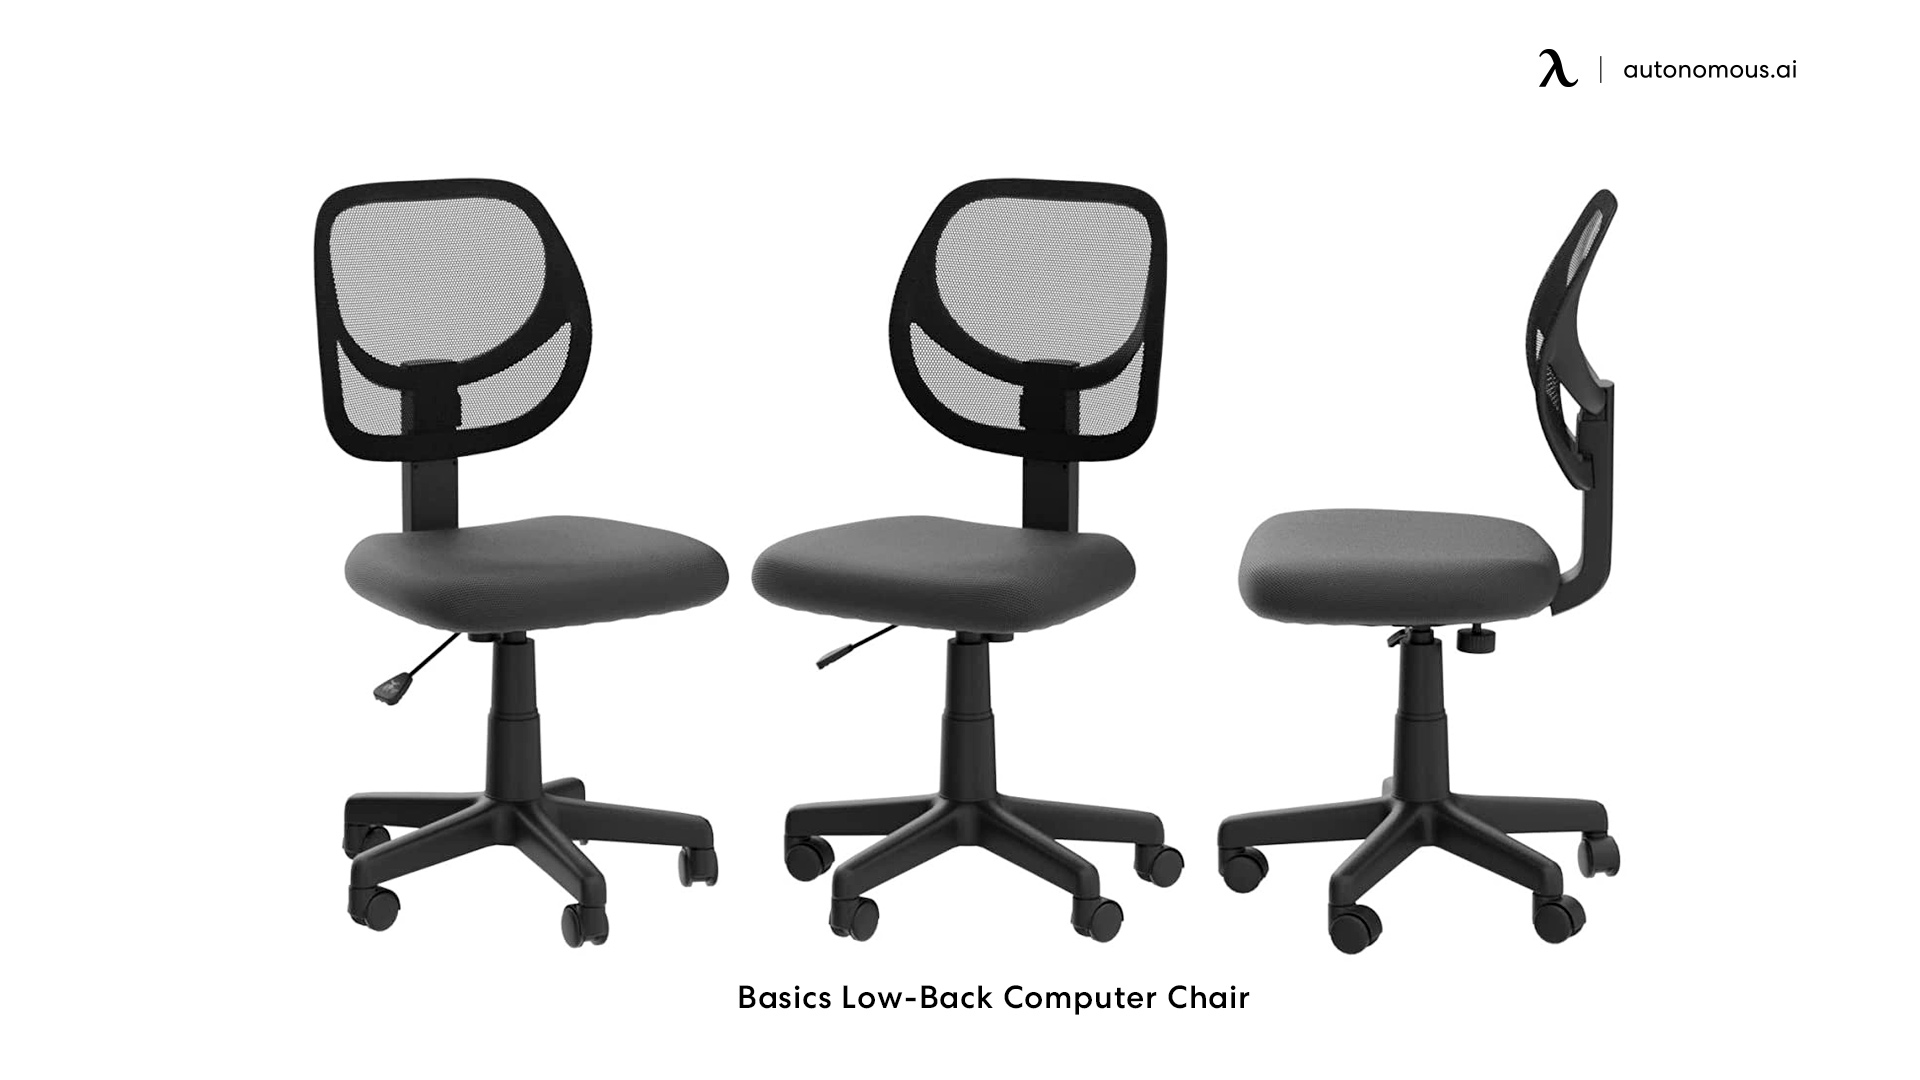 Basics Low-Back Computer Chair